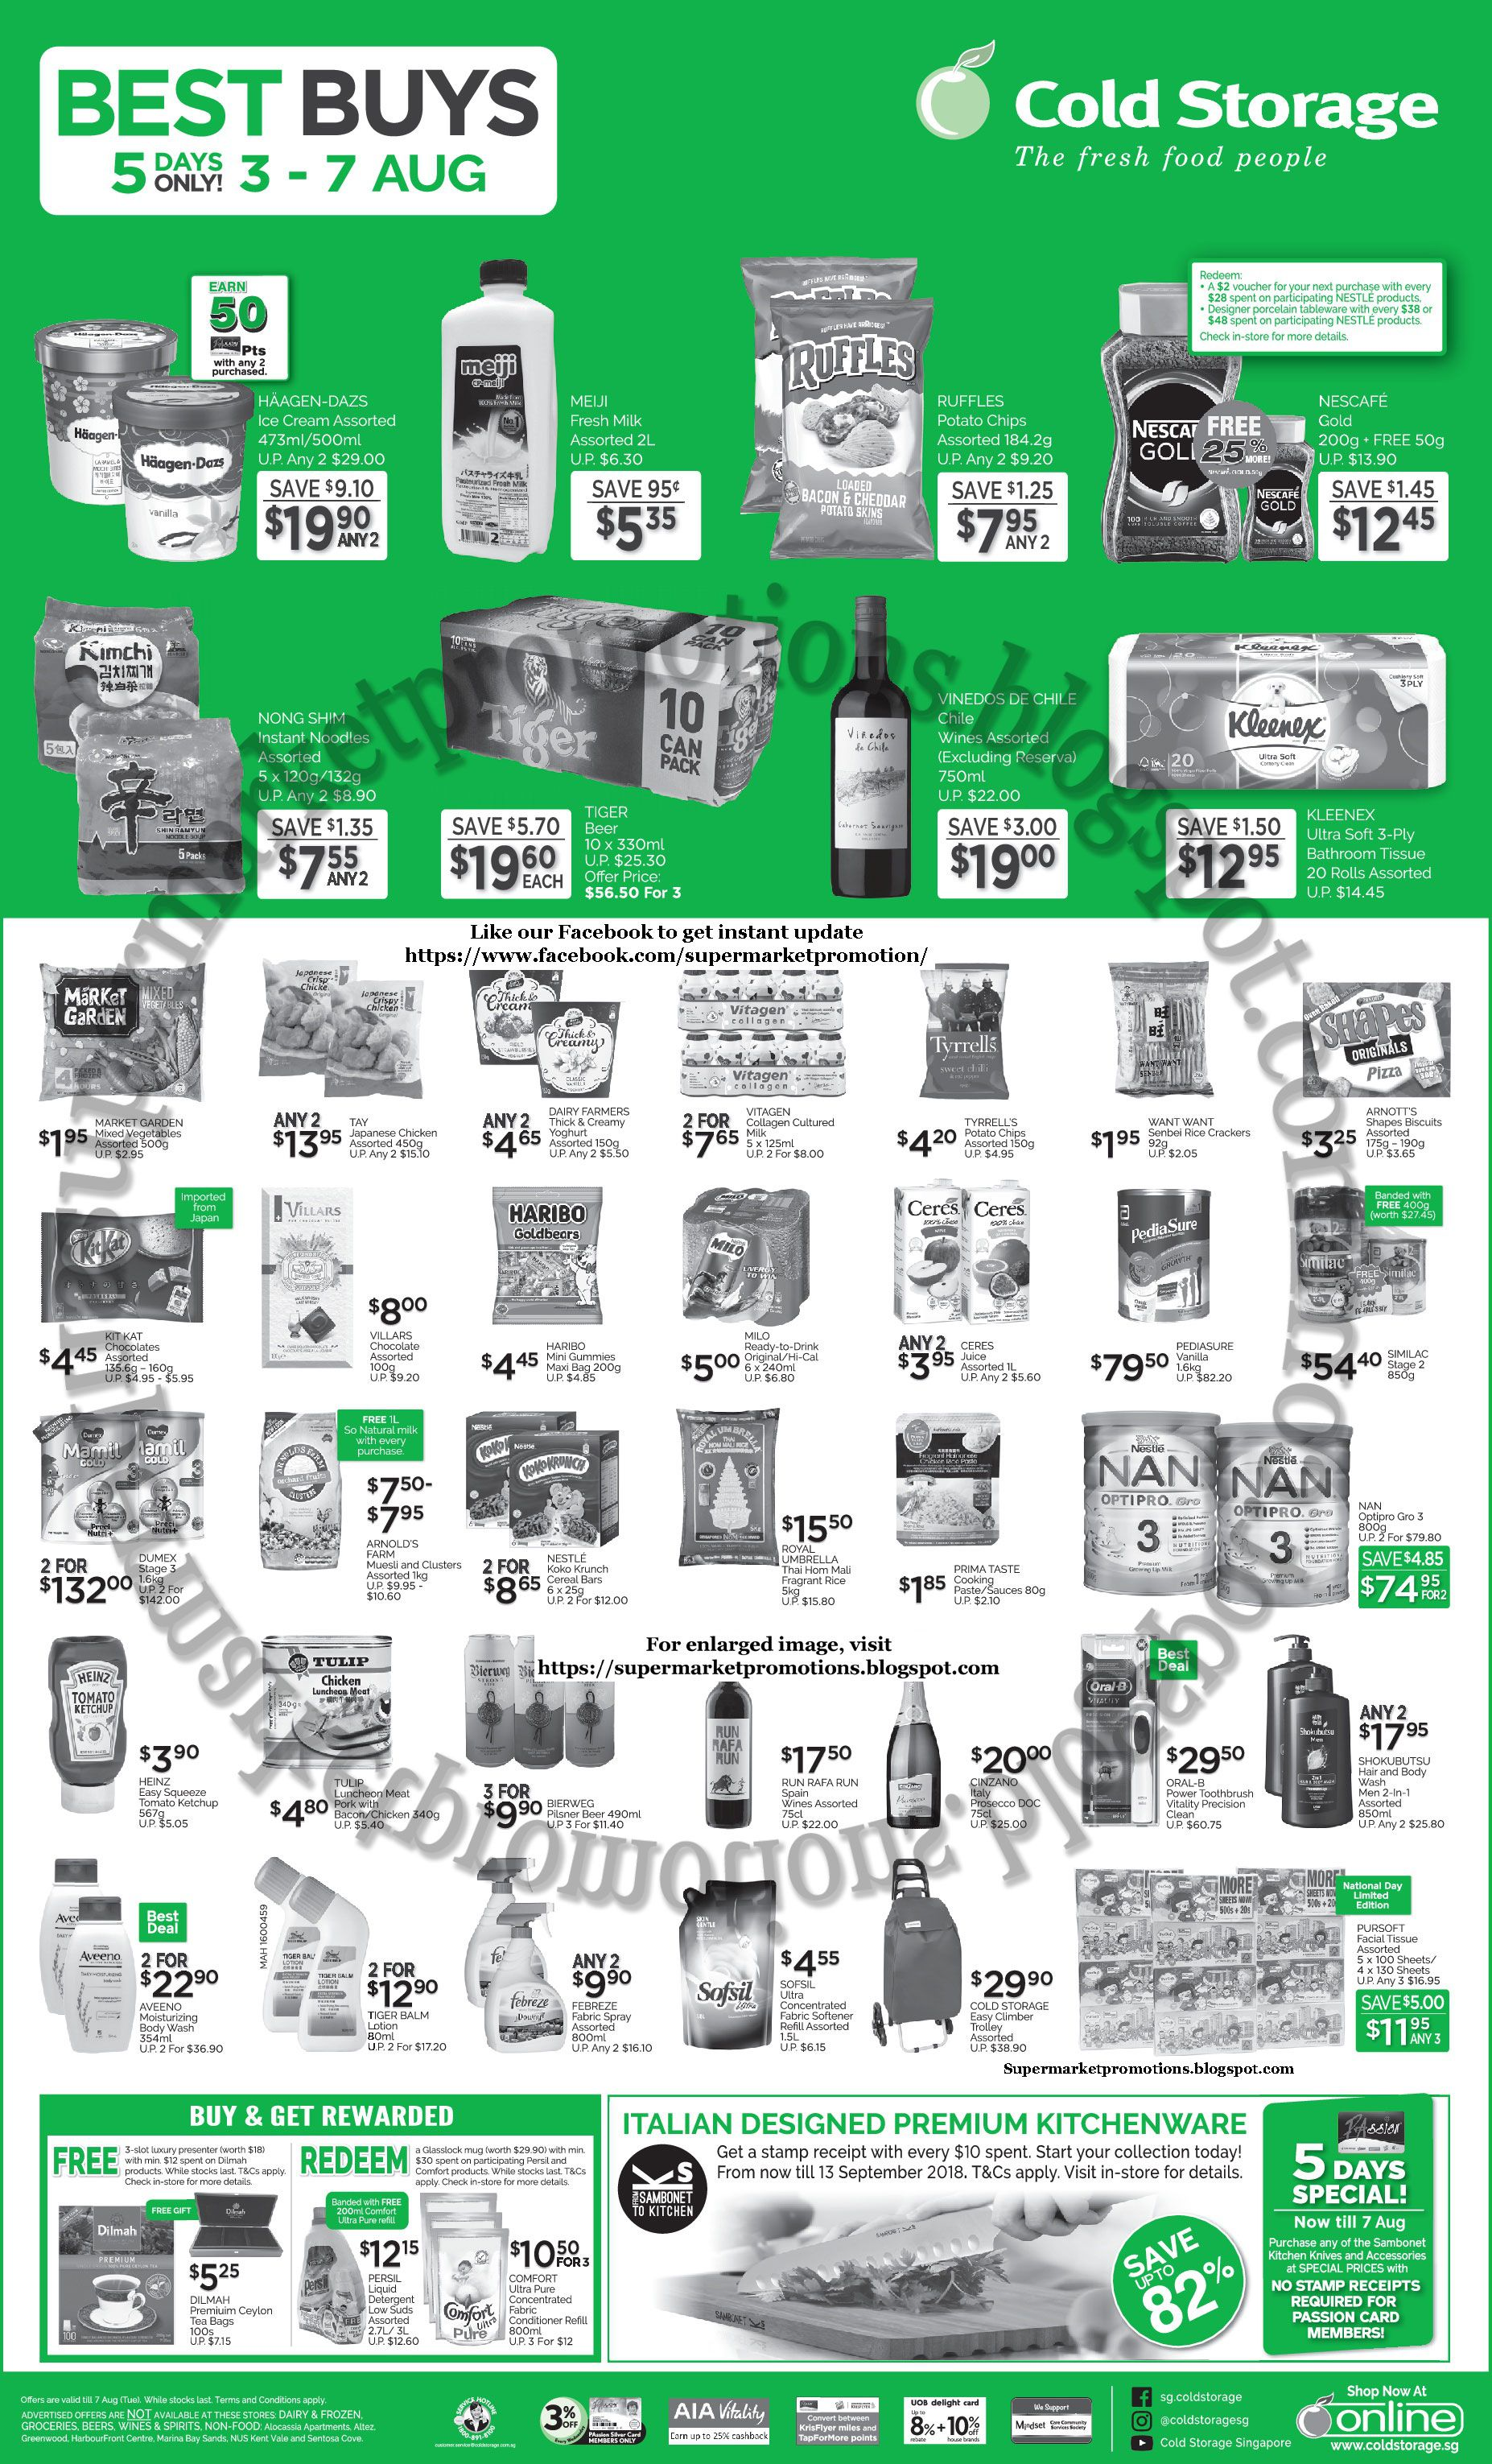 Cold Storage supermarket promotion Cold Storage Promotion 03 - 07 August 2018 Offers valid from 03  sc 1 st  Pinterest & Cold Storage supermarket promotion Cold Storage Promotion 03 - 07 ...